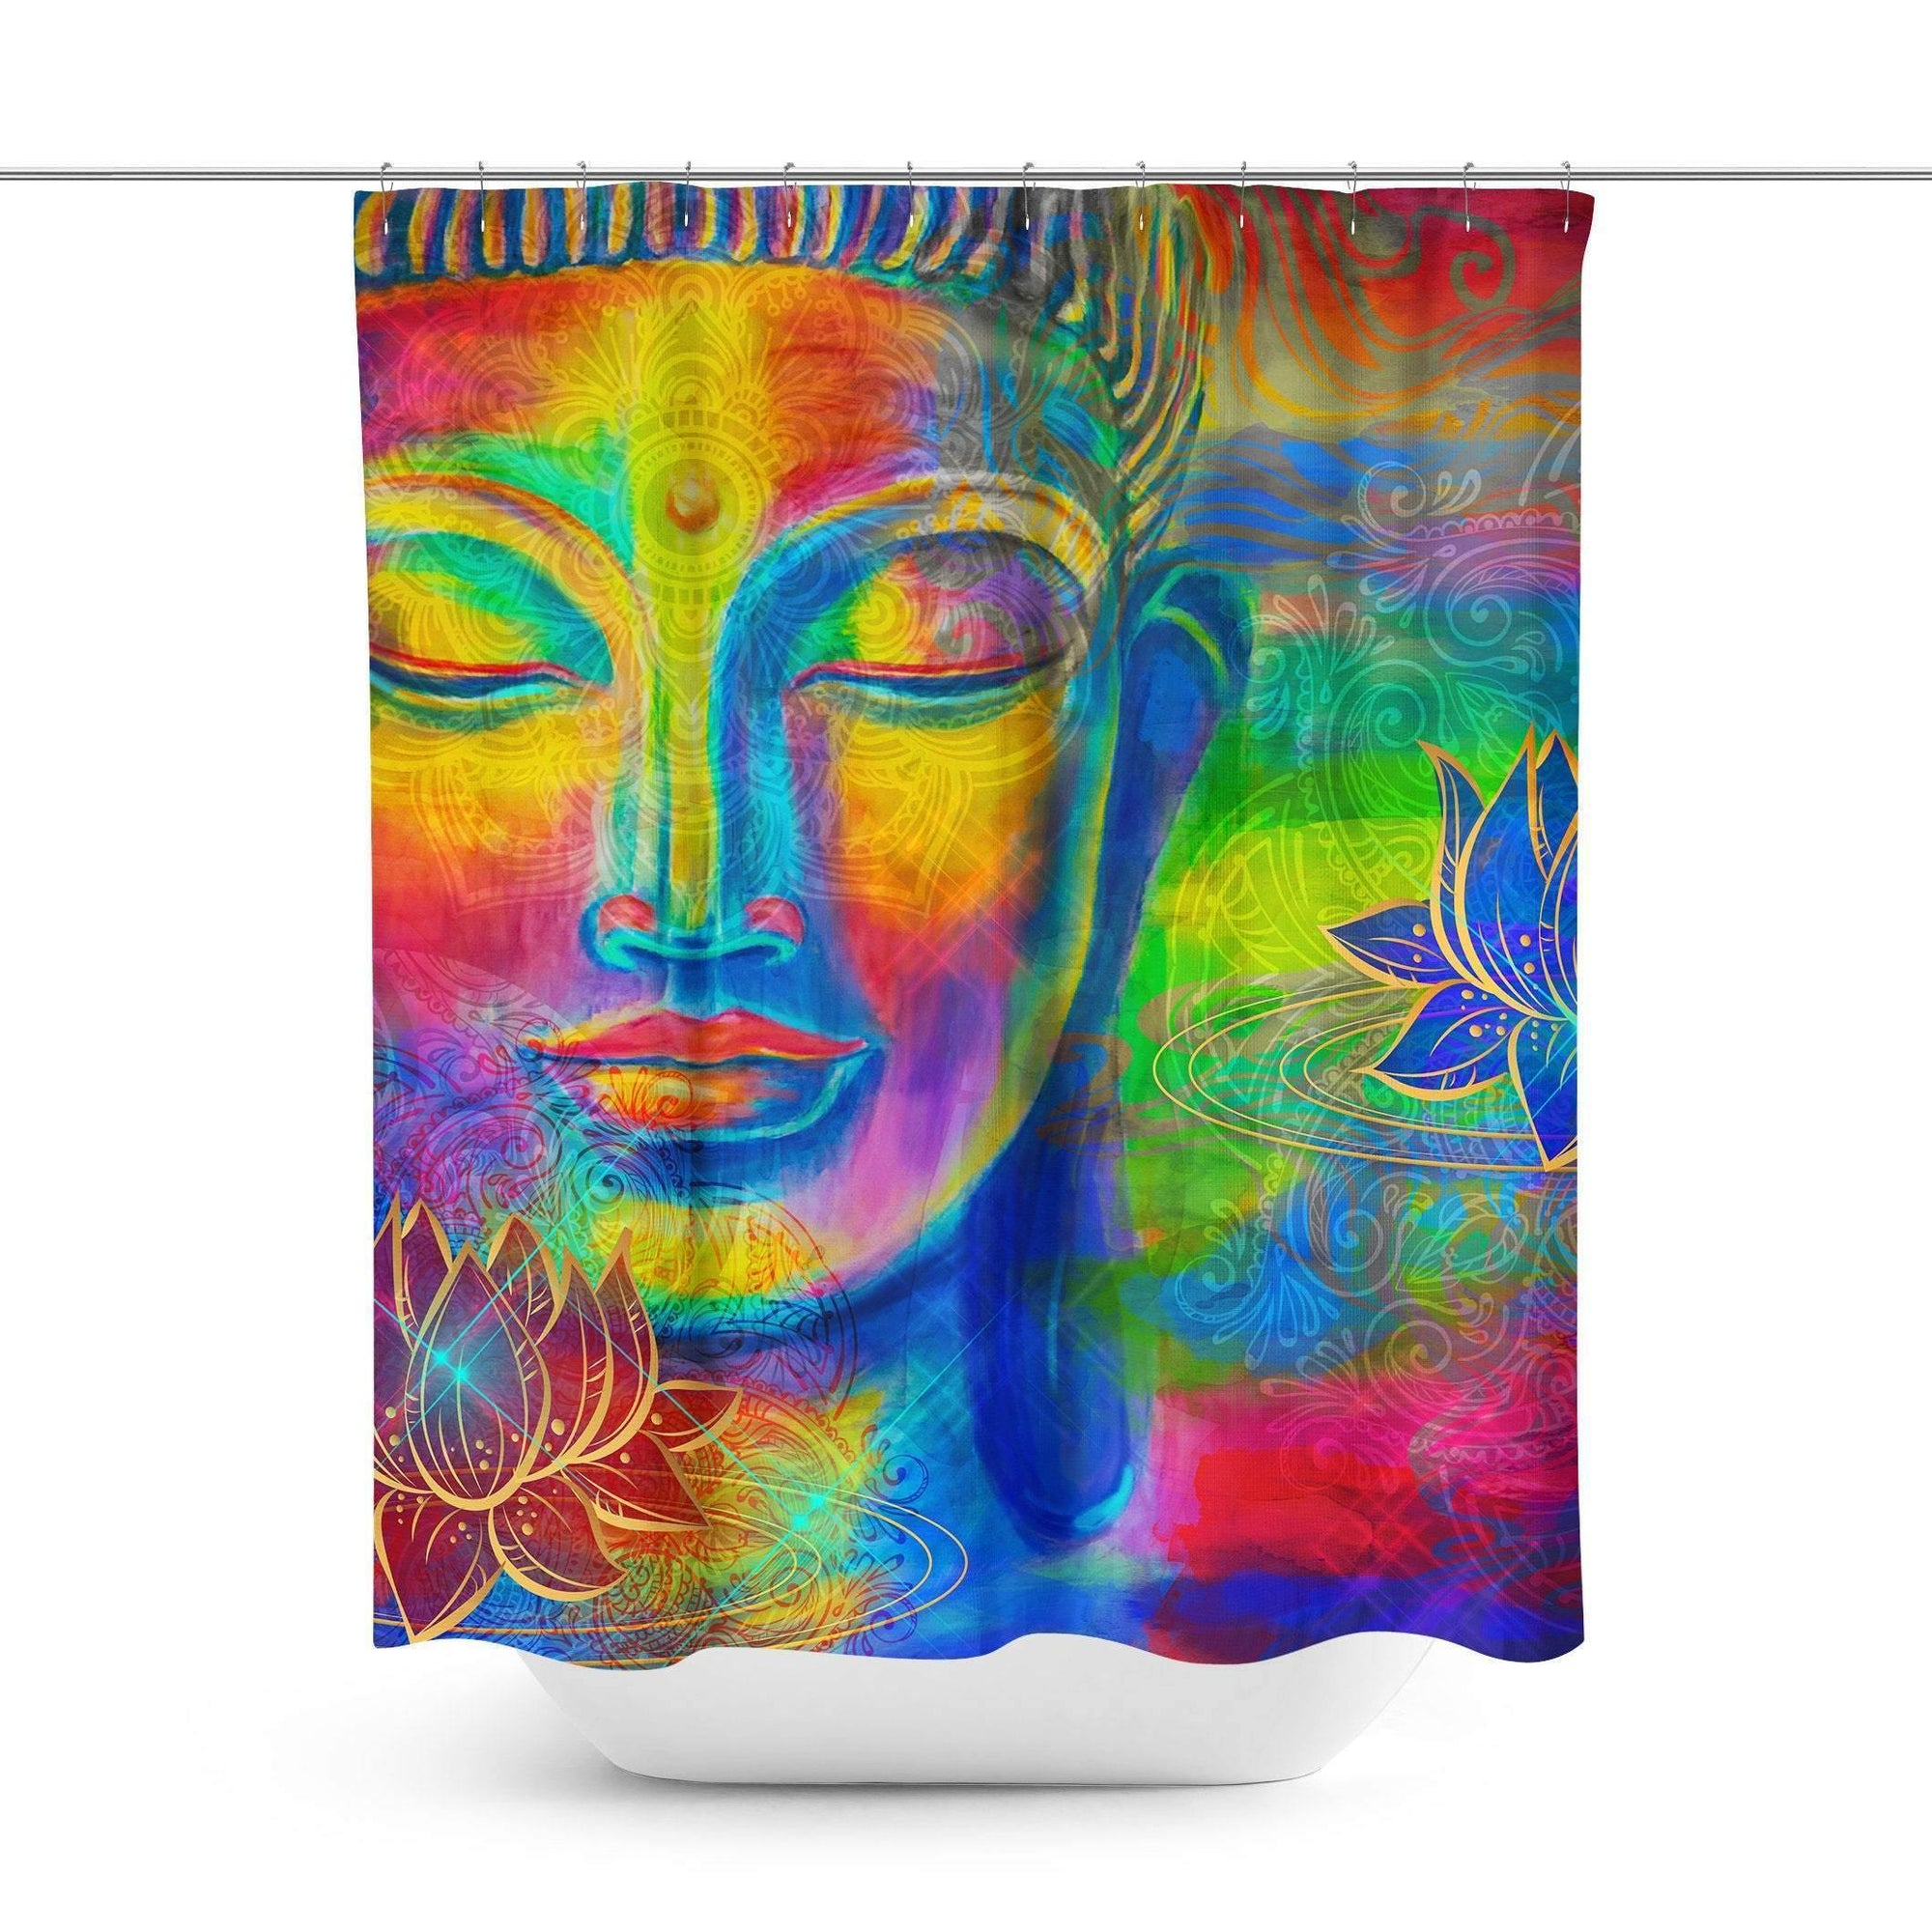 Buddha Shower Curtain-W.FRANCIS